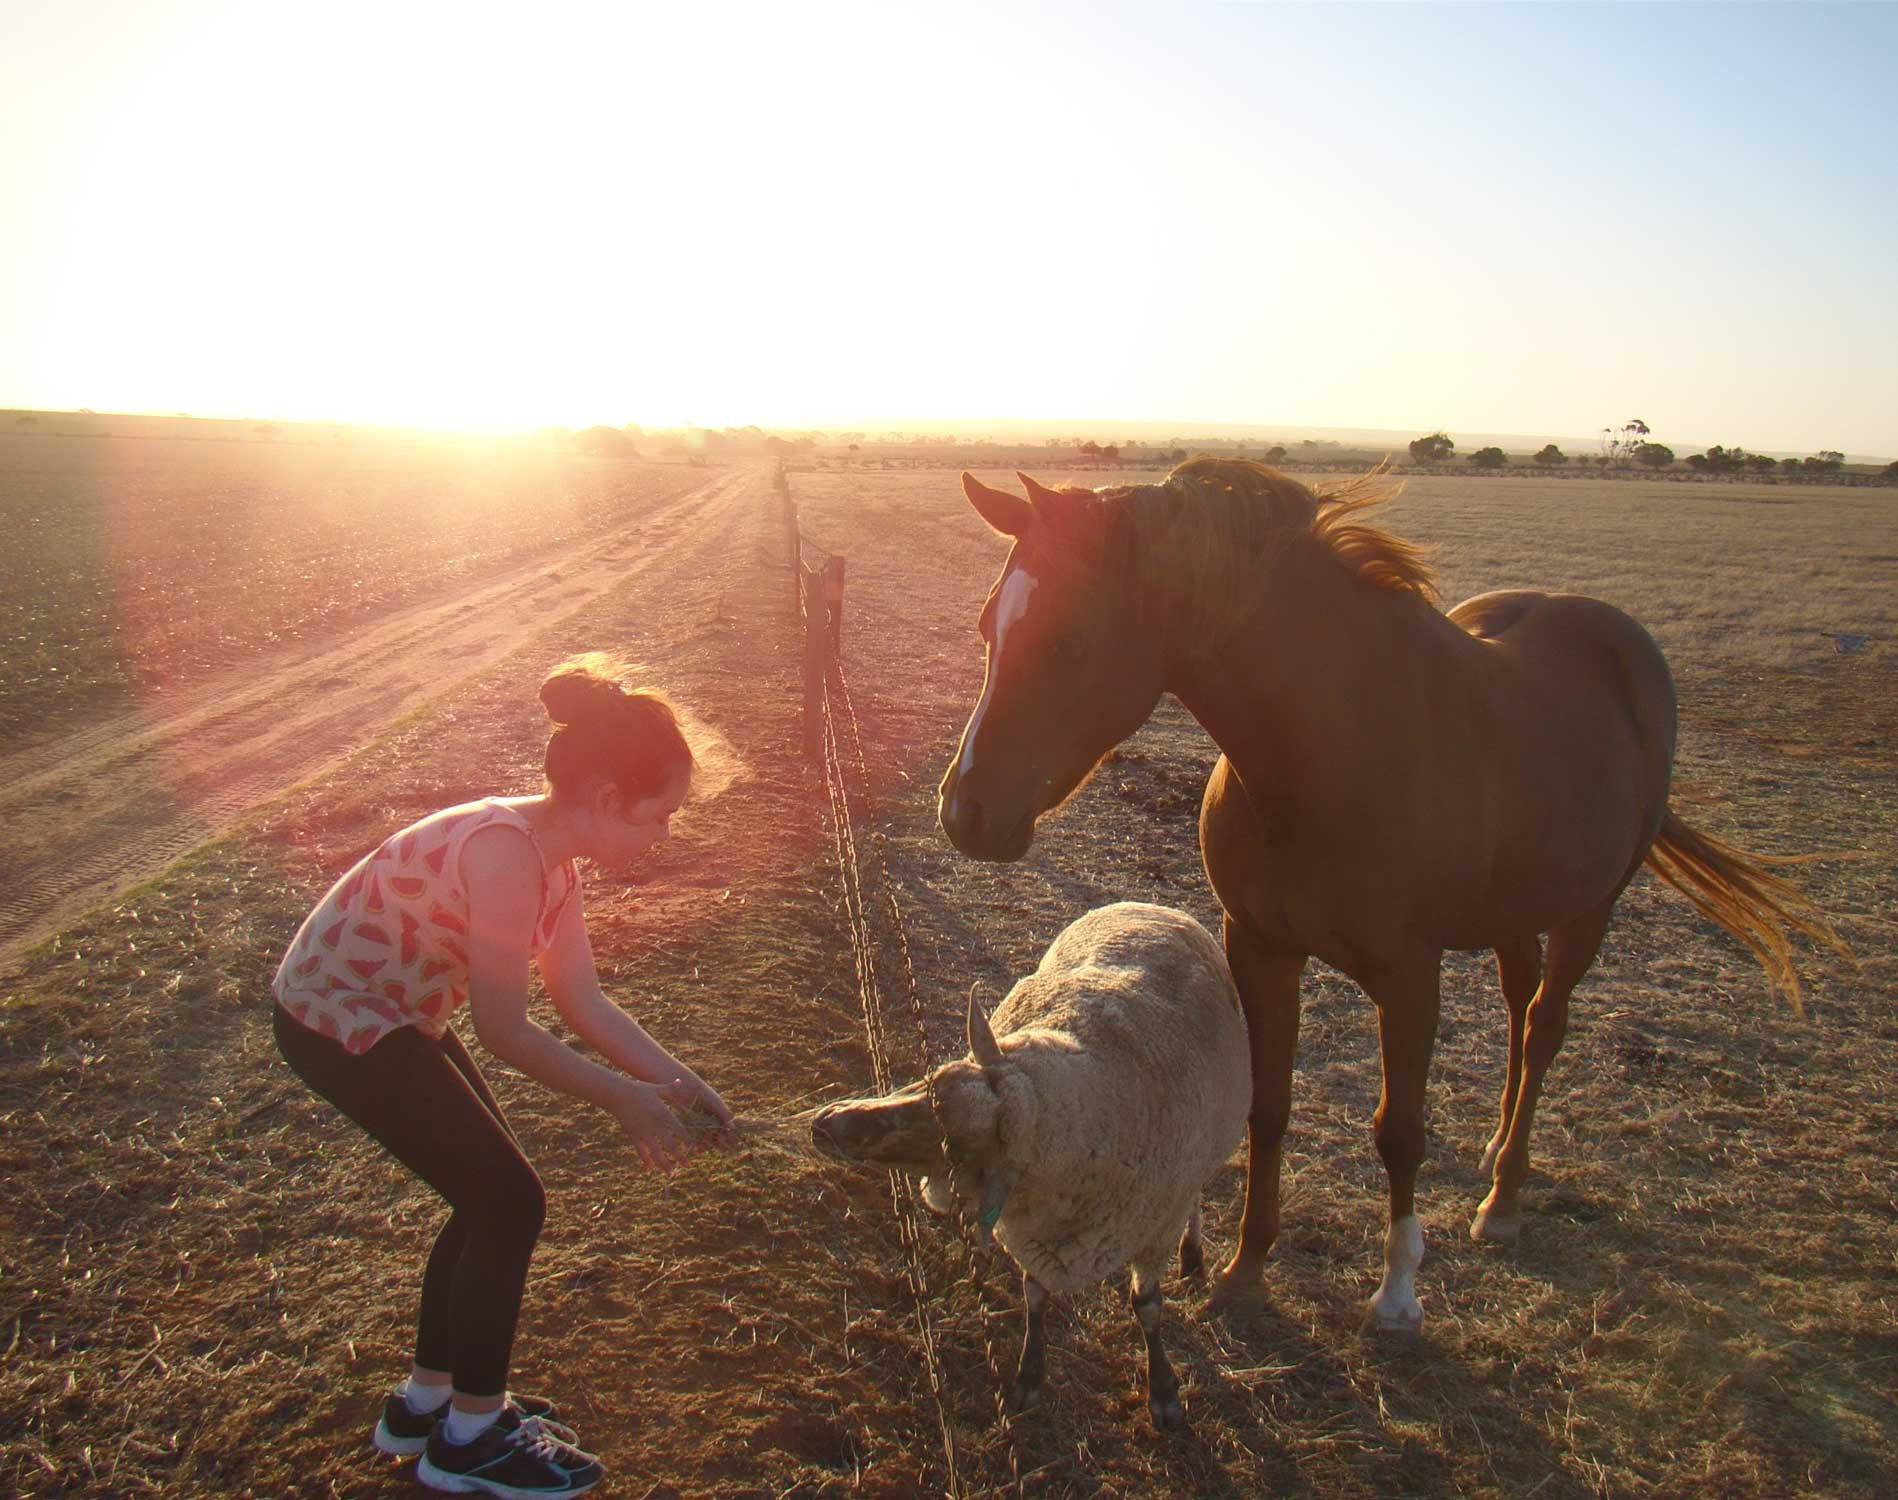 Tookii things to do with kids horse and sheep best friends one of the outdoor activities for kids